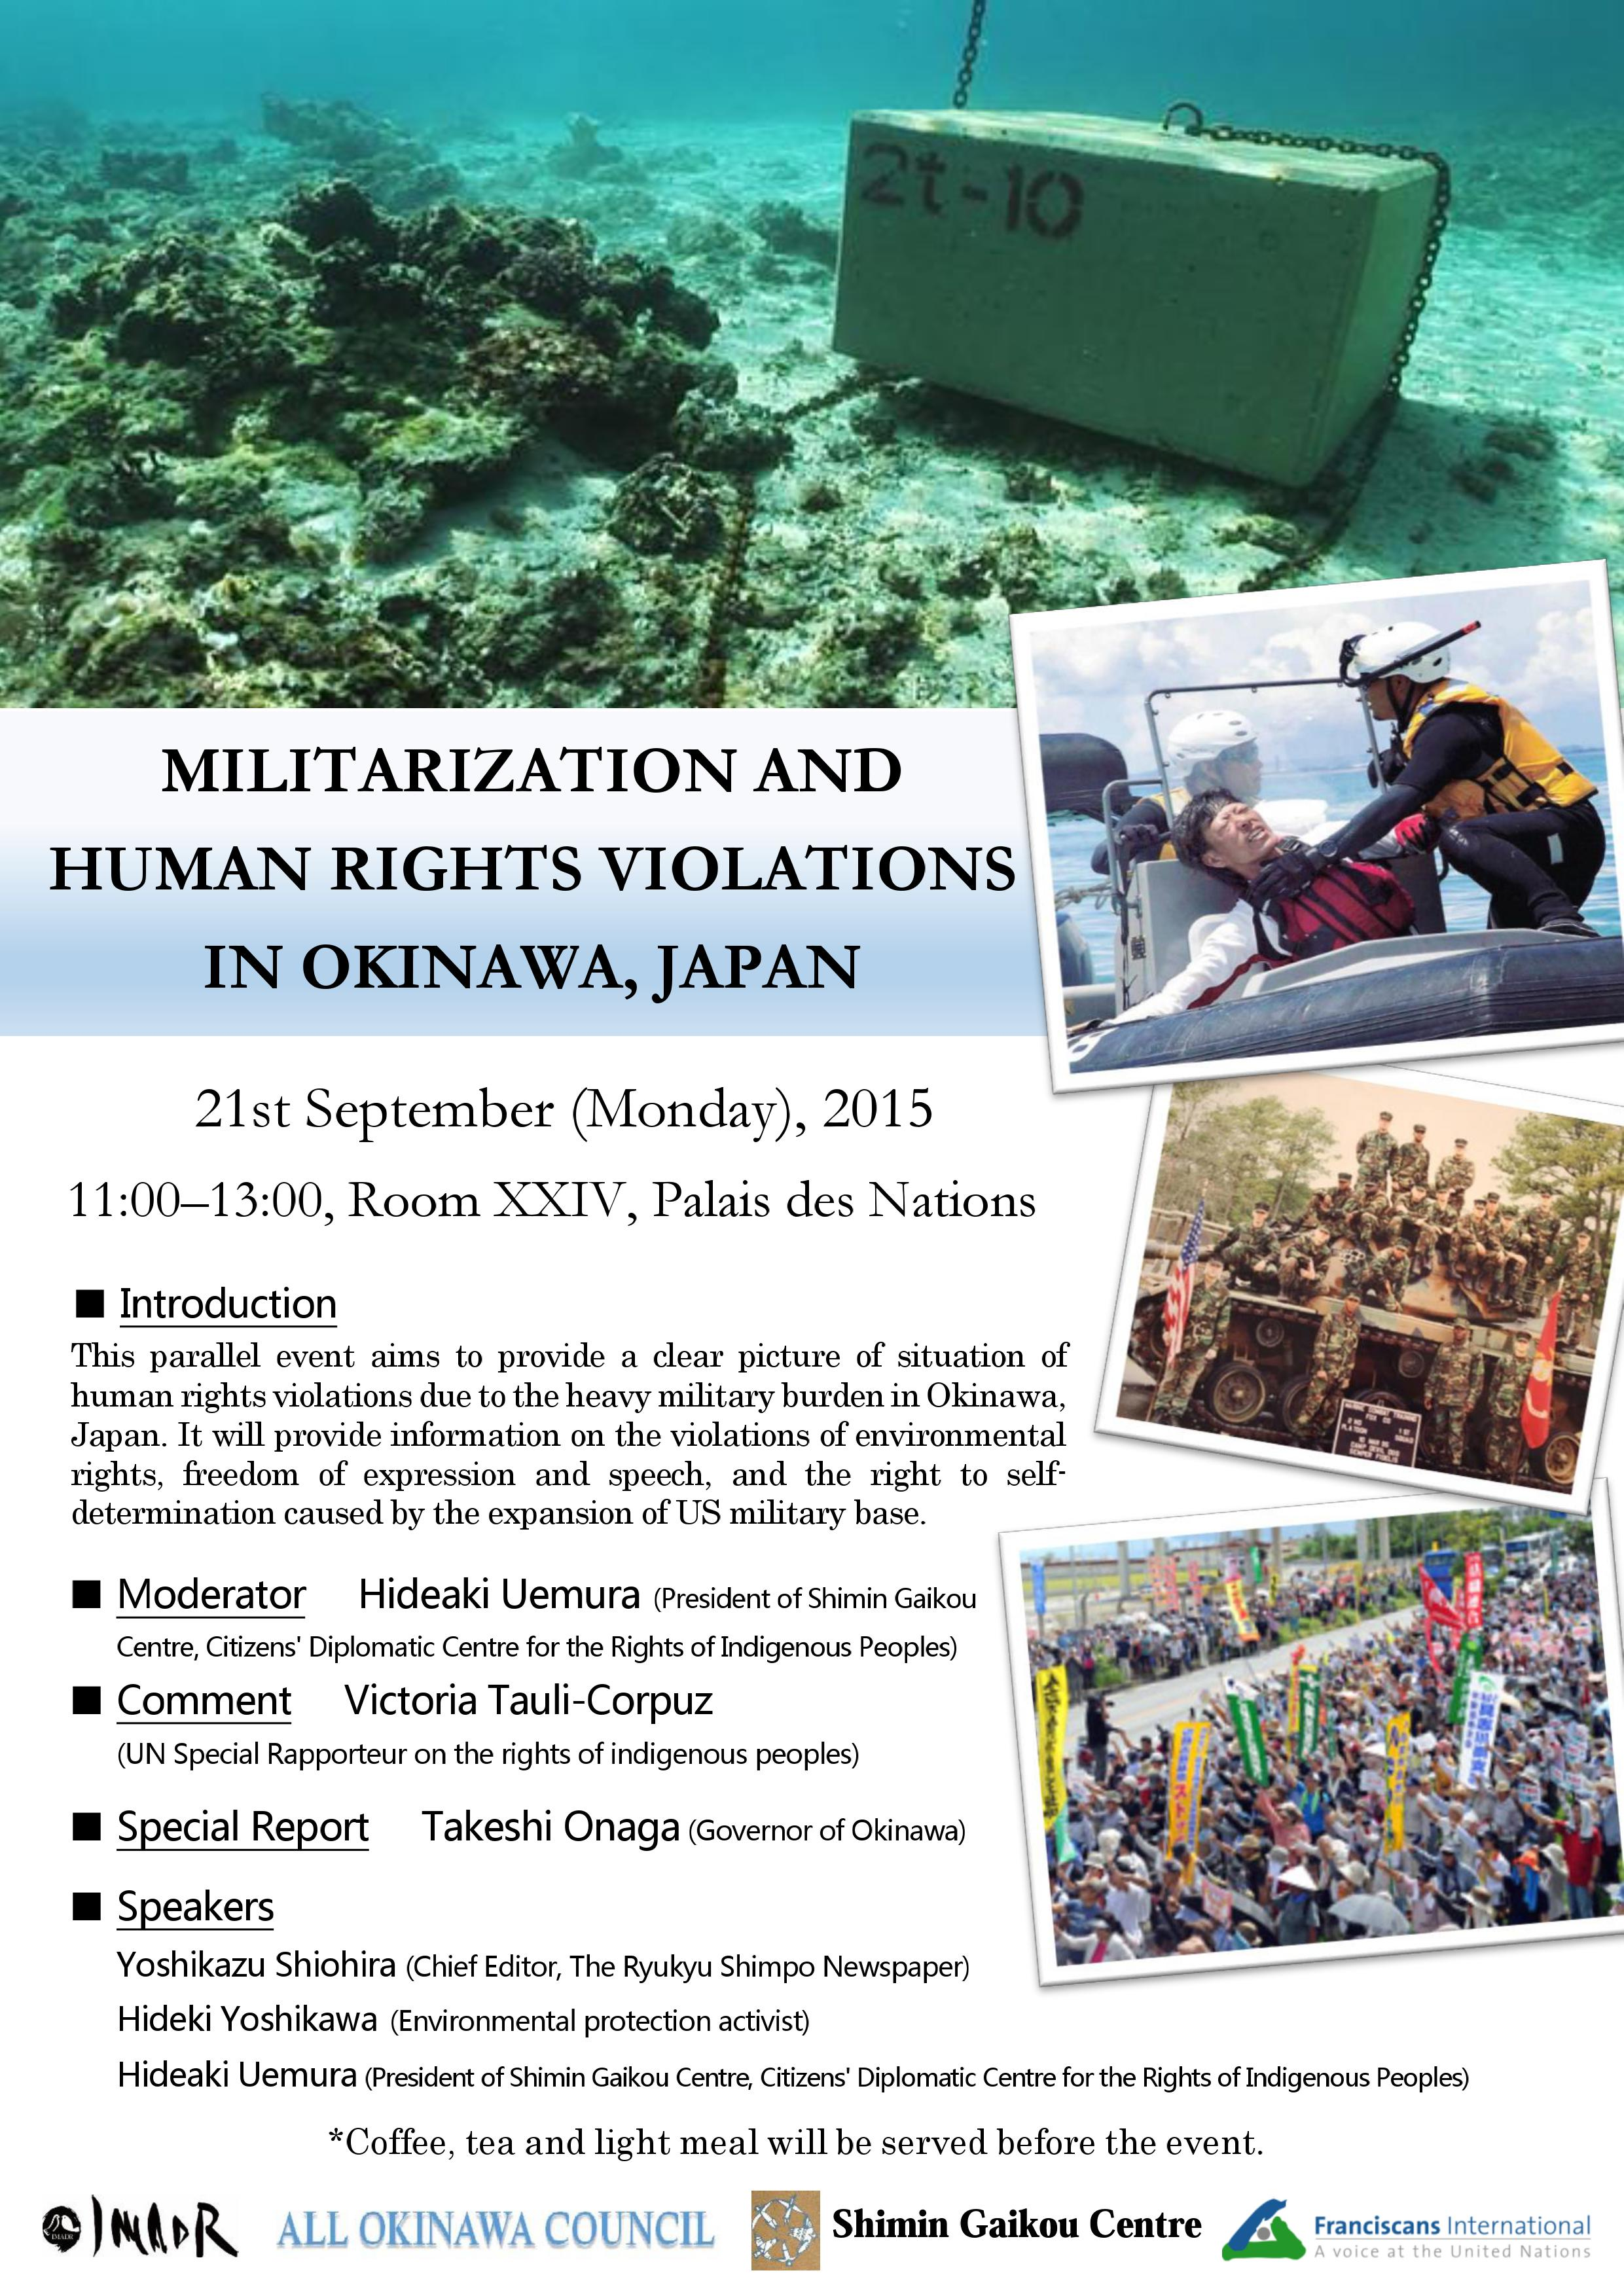 Invitation - HRC 30 side event_Militarization and Human Rights Violations in Okinawa, Japan (11am, Mon 21 September 2015 @ Room XXIV)